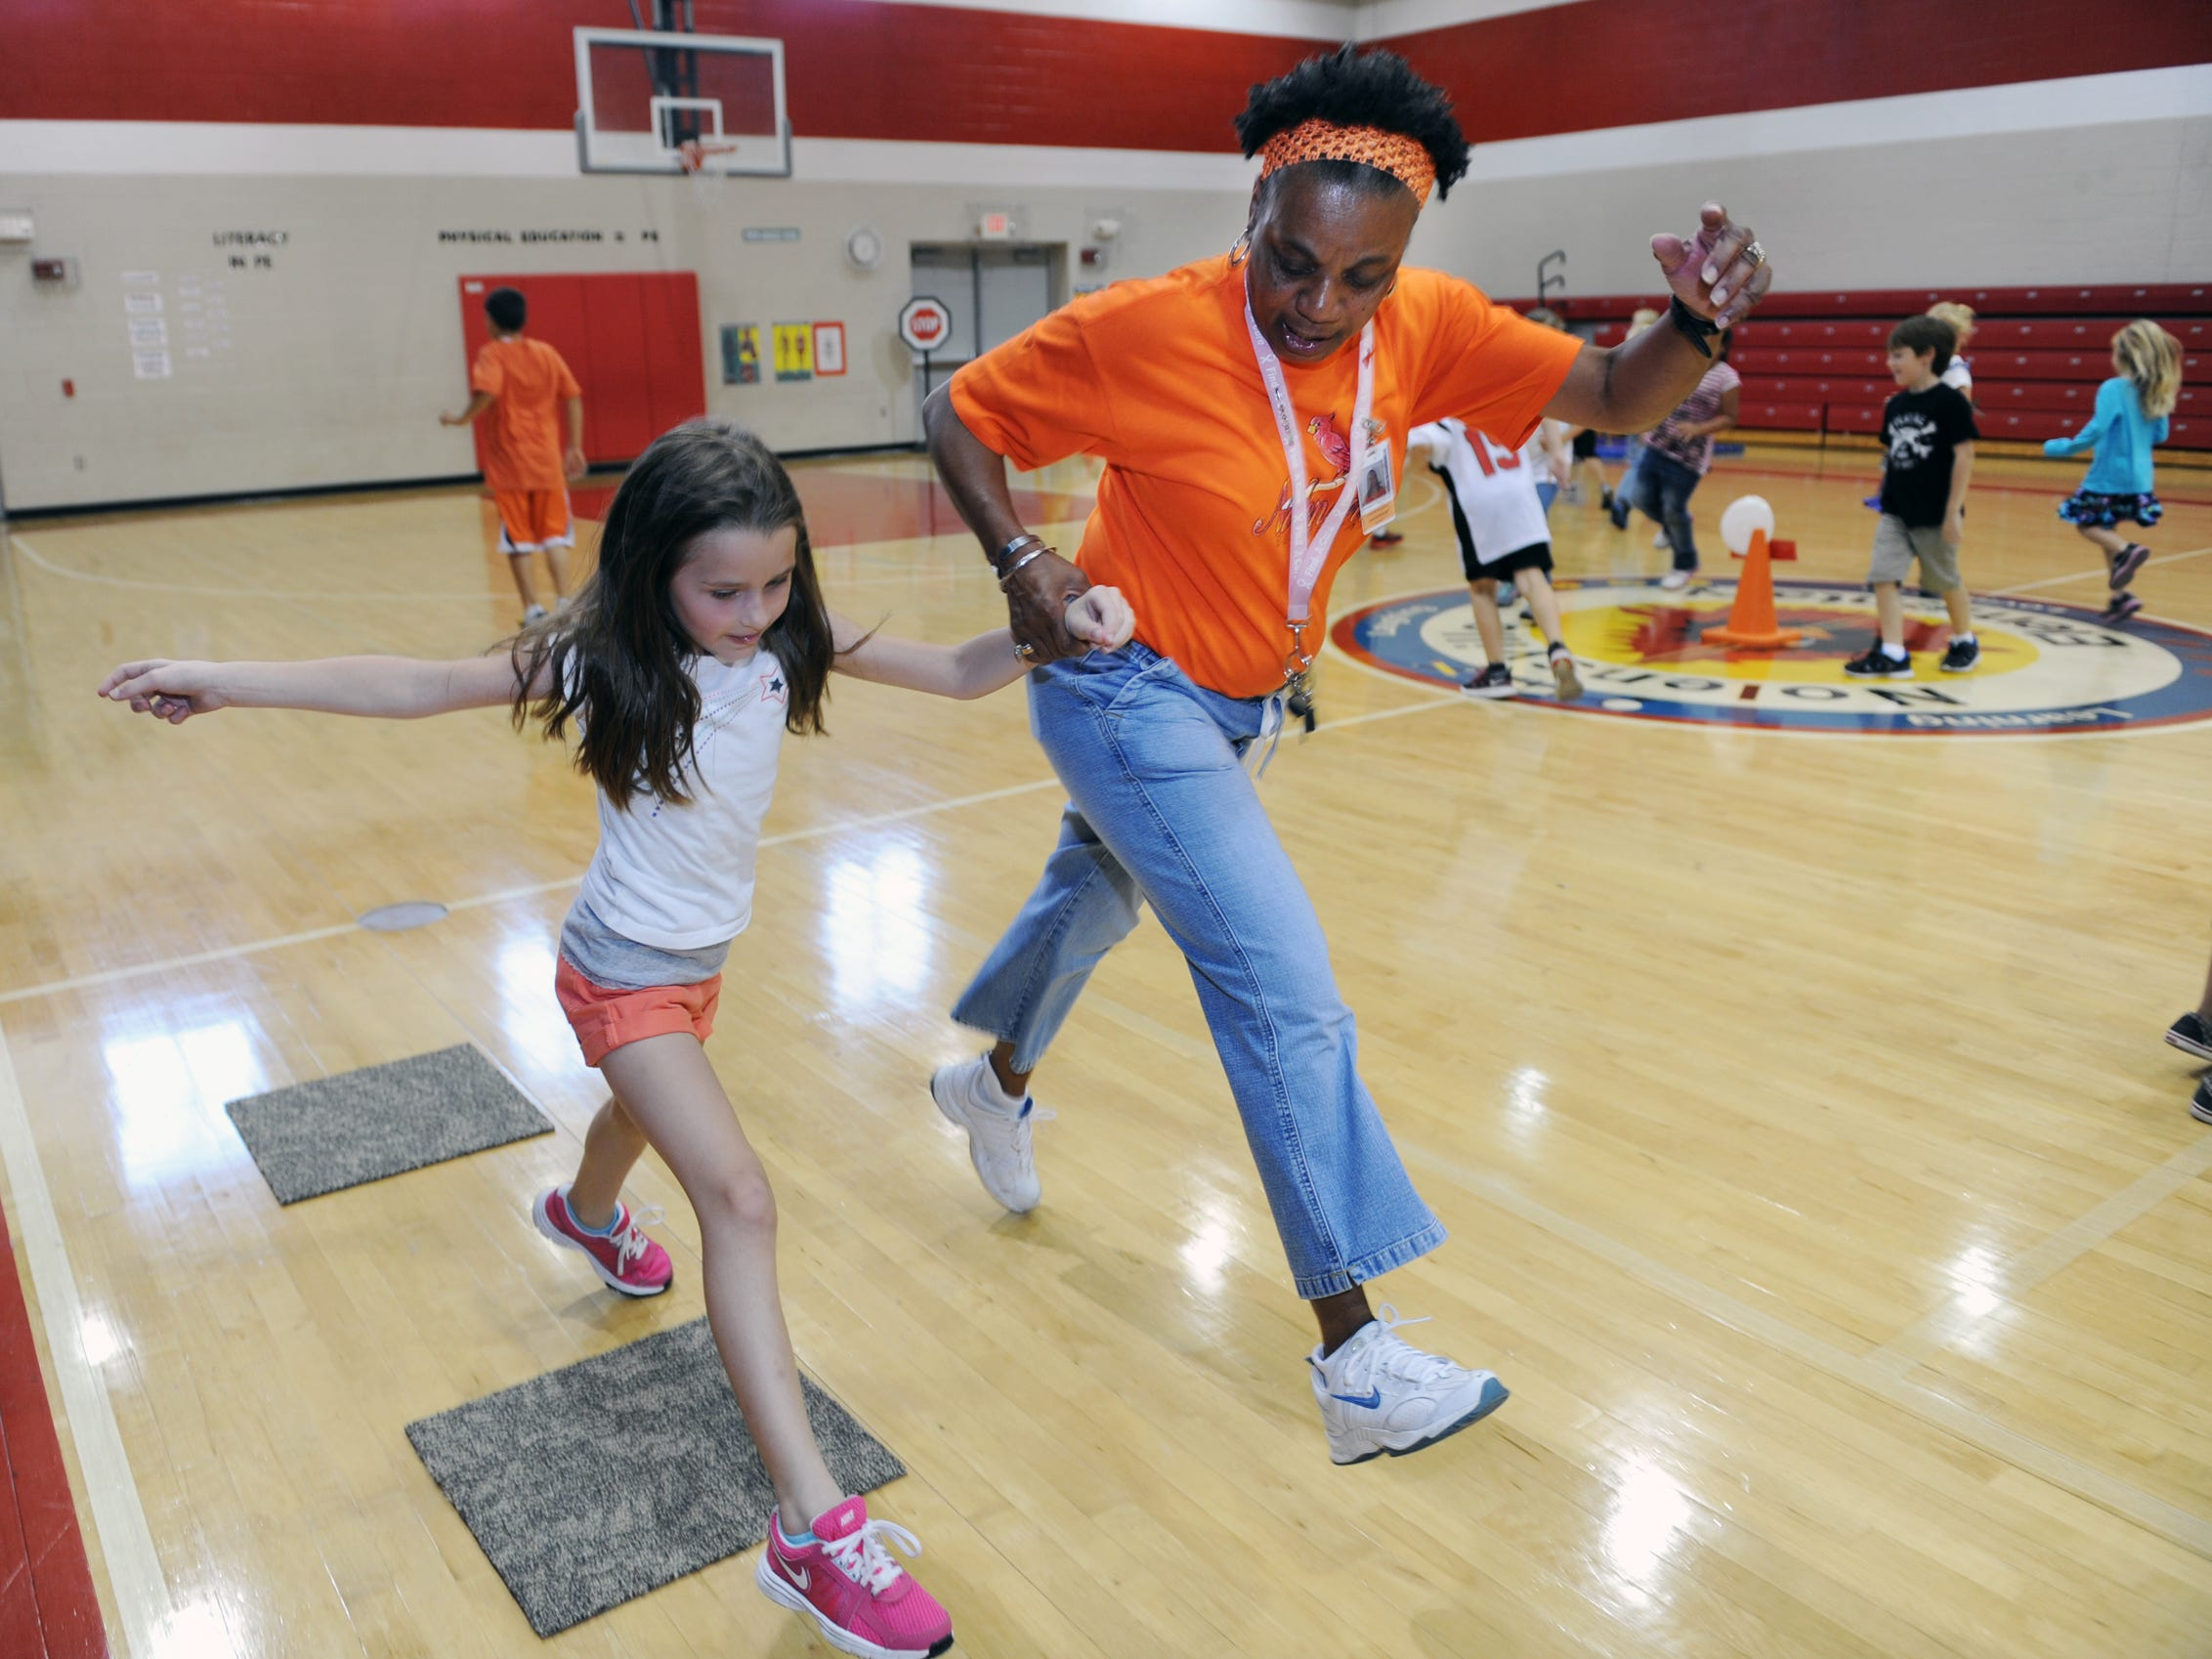 Nolensville Elementary P.E. teacher Deborah Russell, a breast cancer survivor, shows Addie Gleaves, 7, how to leap during class in 2012.